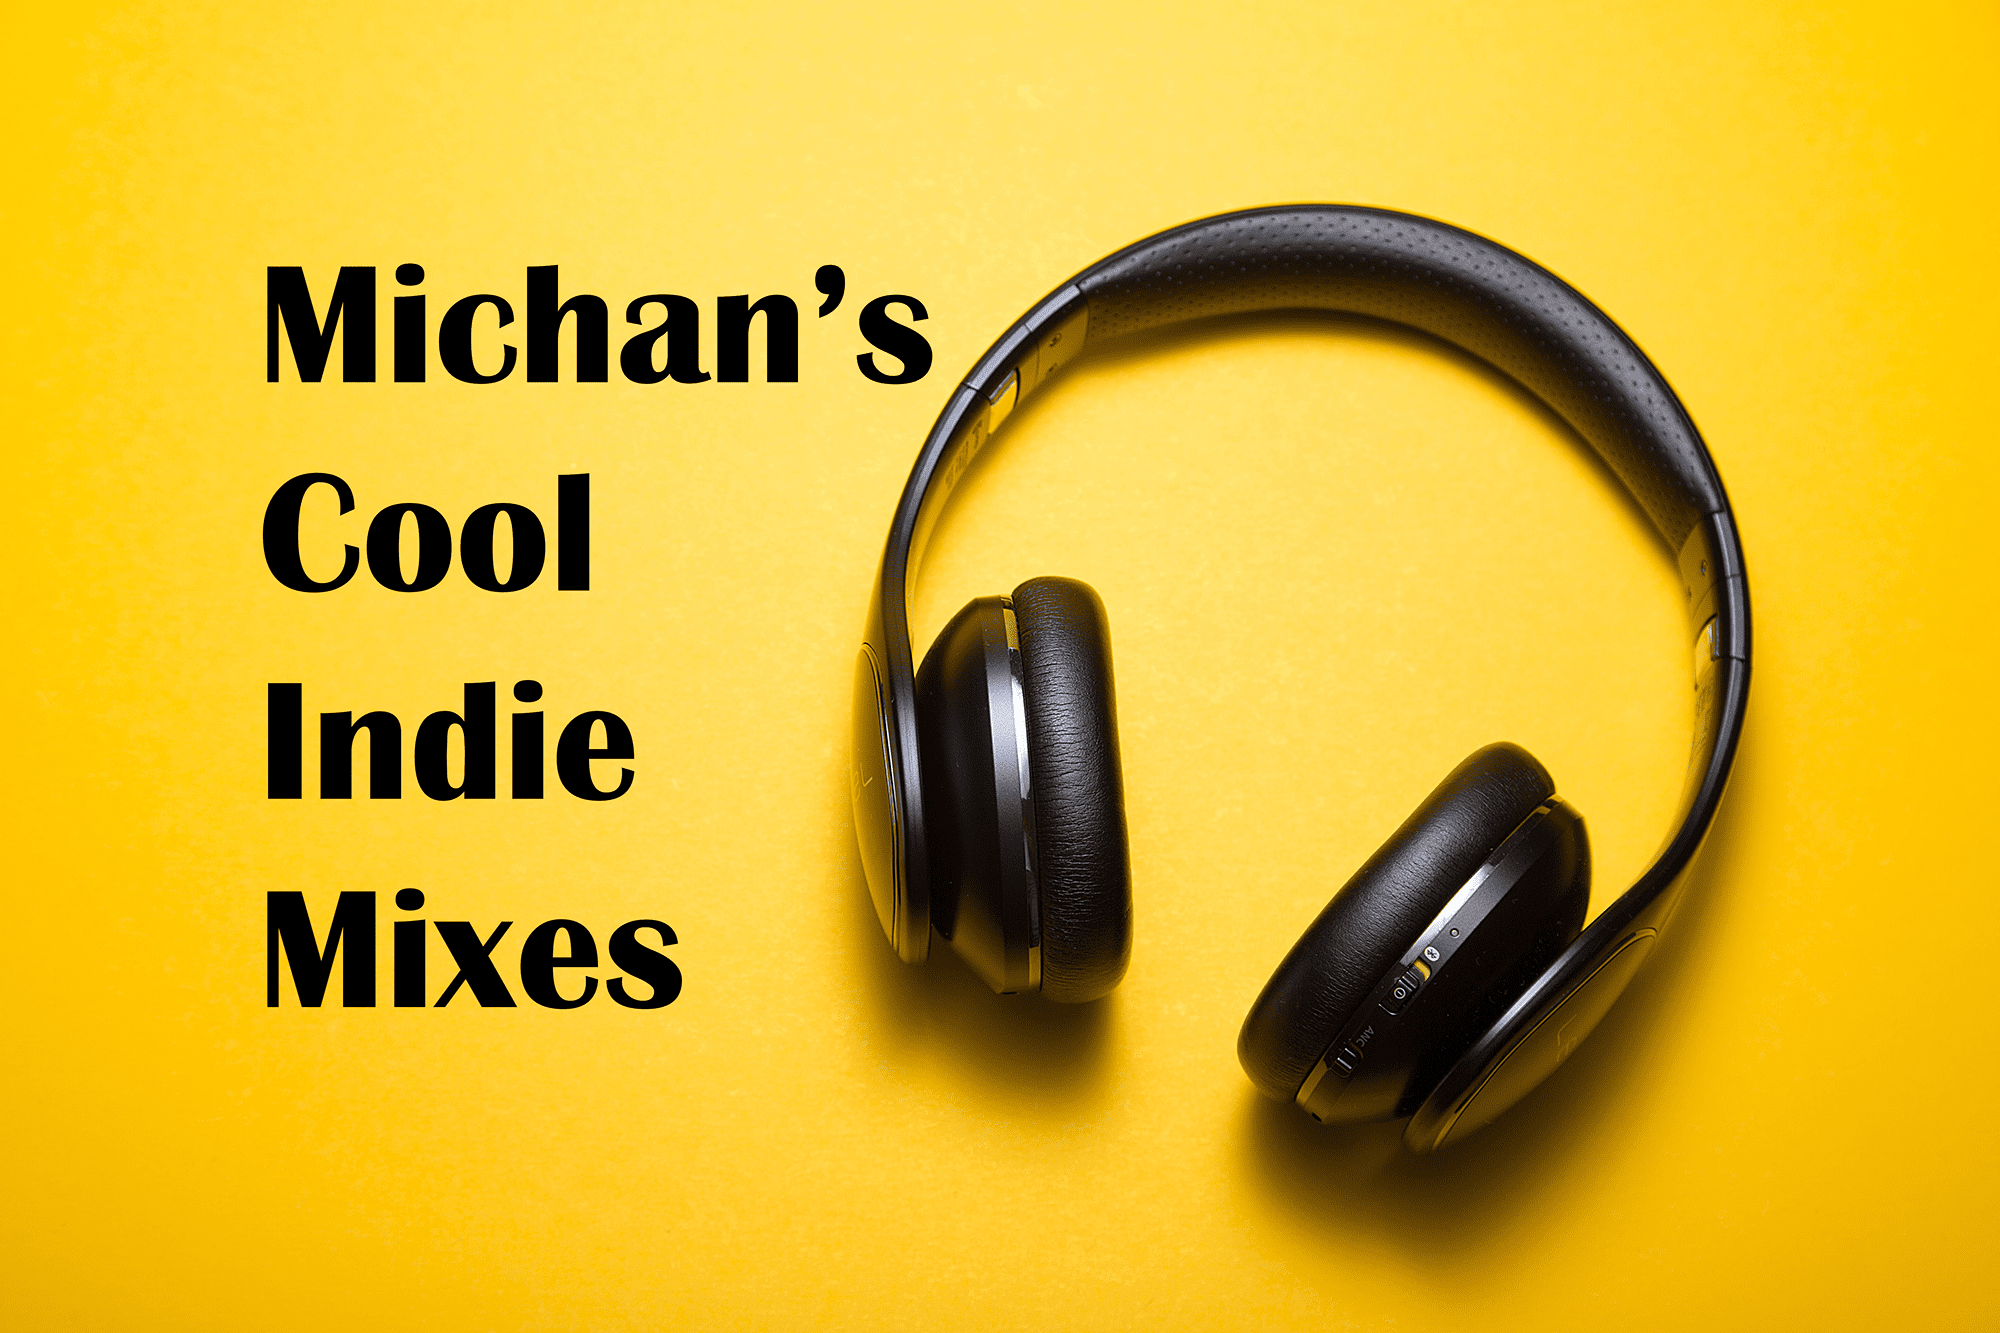 Playlist Michan's Cool Indie Mixes – Playlist 8